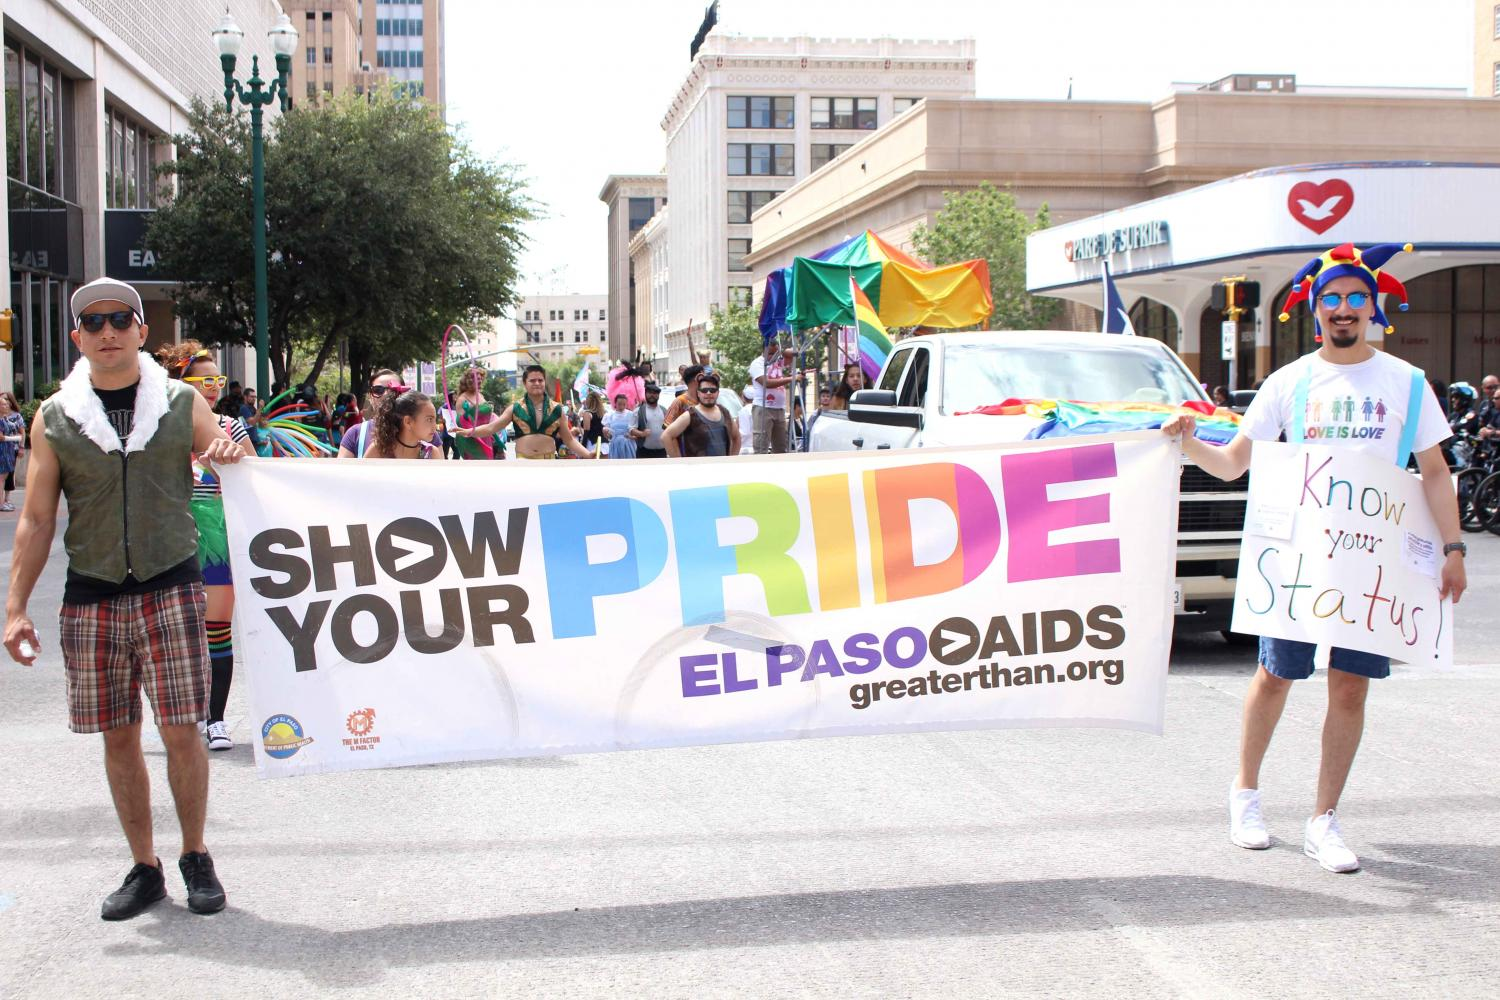 Pride+Month+will+be+celebrating+its+12th+year+in+El+Paso.